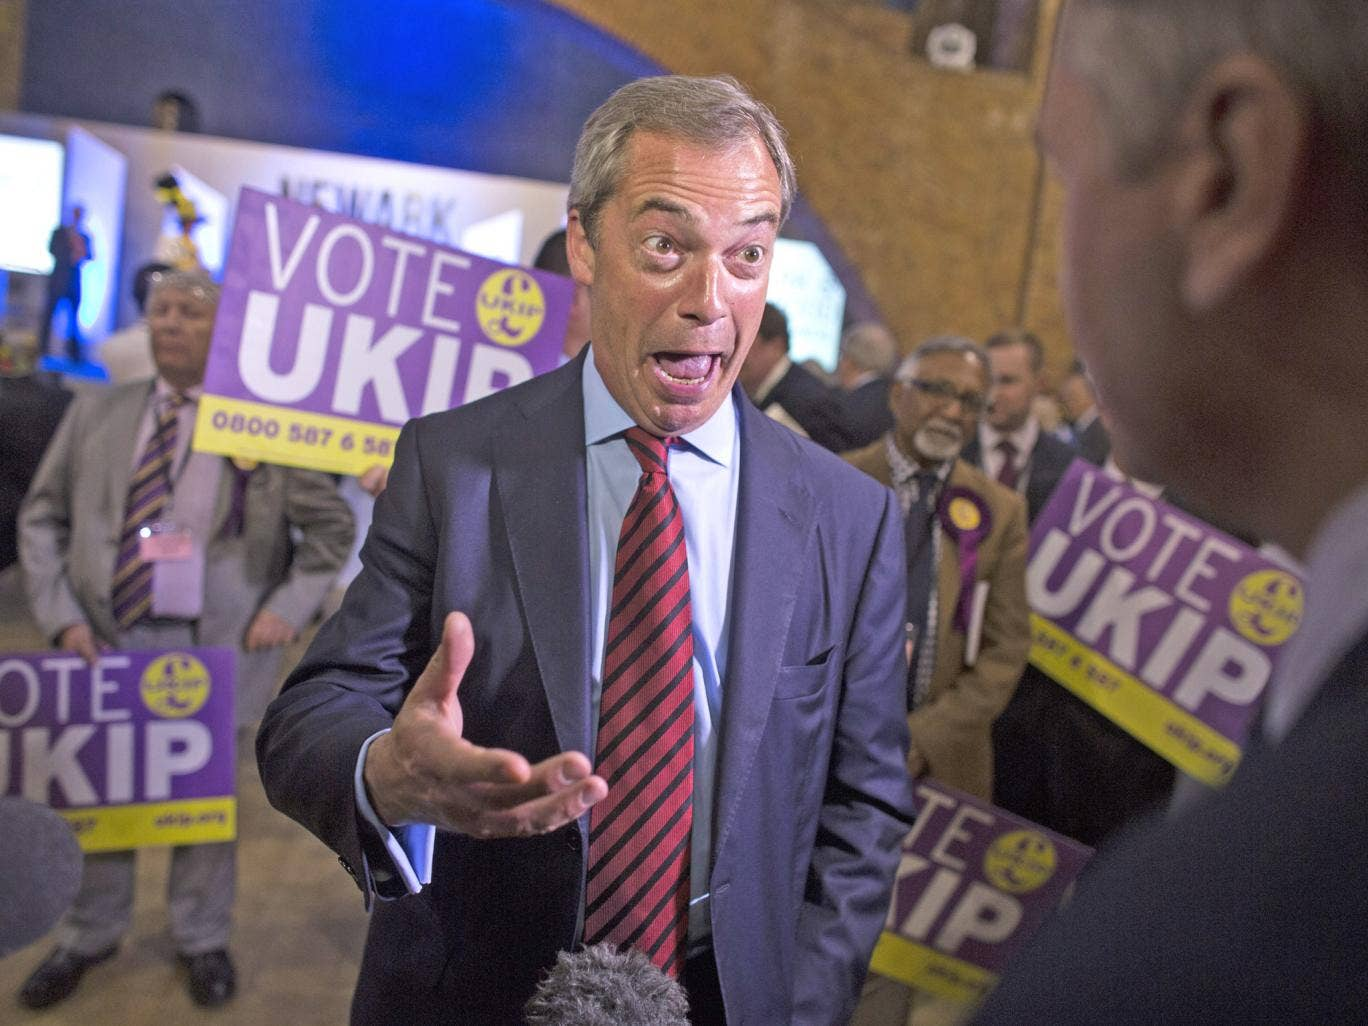 Nigel Farage's party is appealing to disillusioned Labour supporters